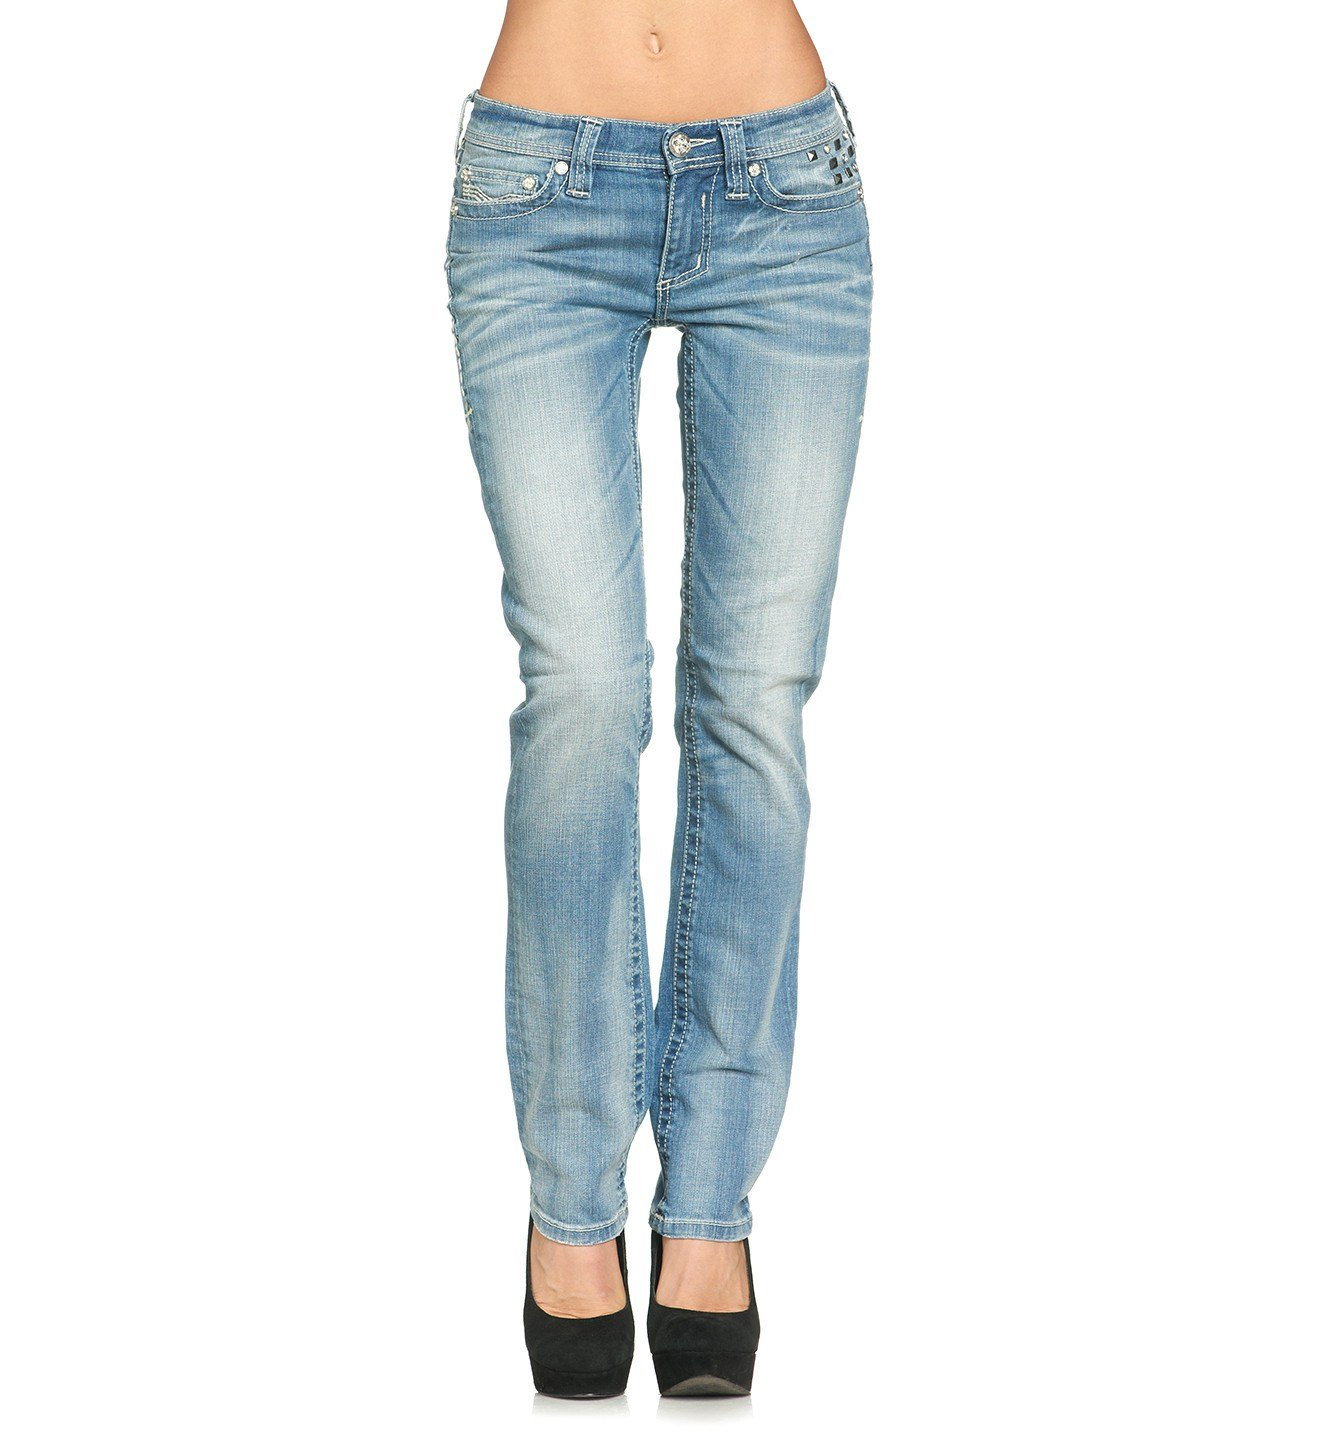 Jenna Crystal Dover - Womens Denim Bottoms - Affliction Clothing